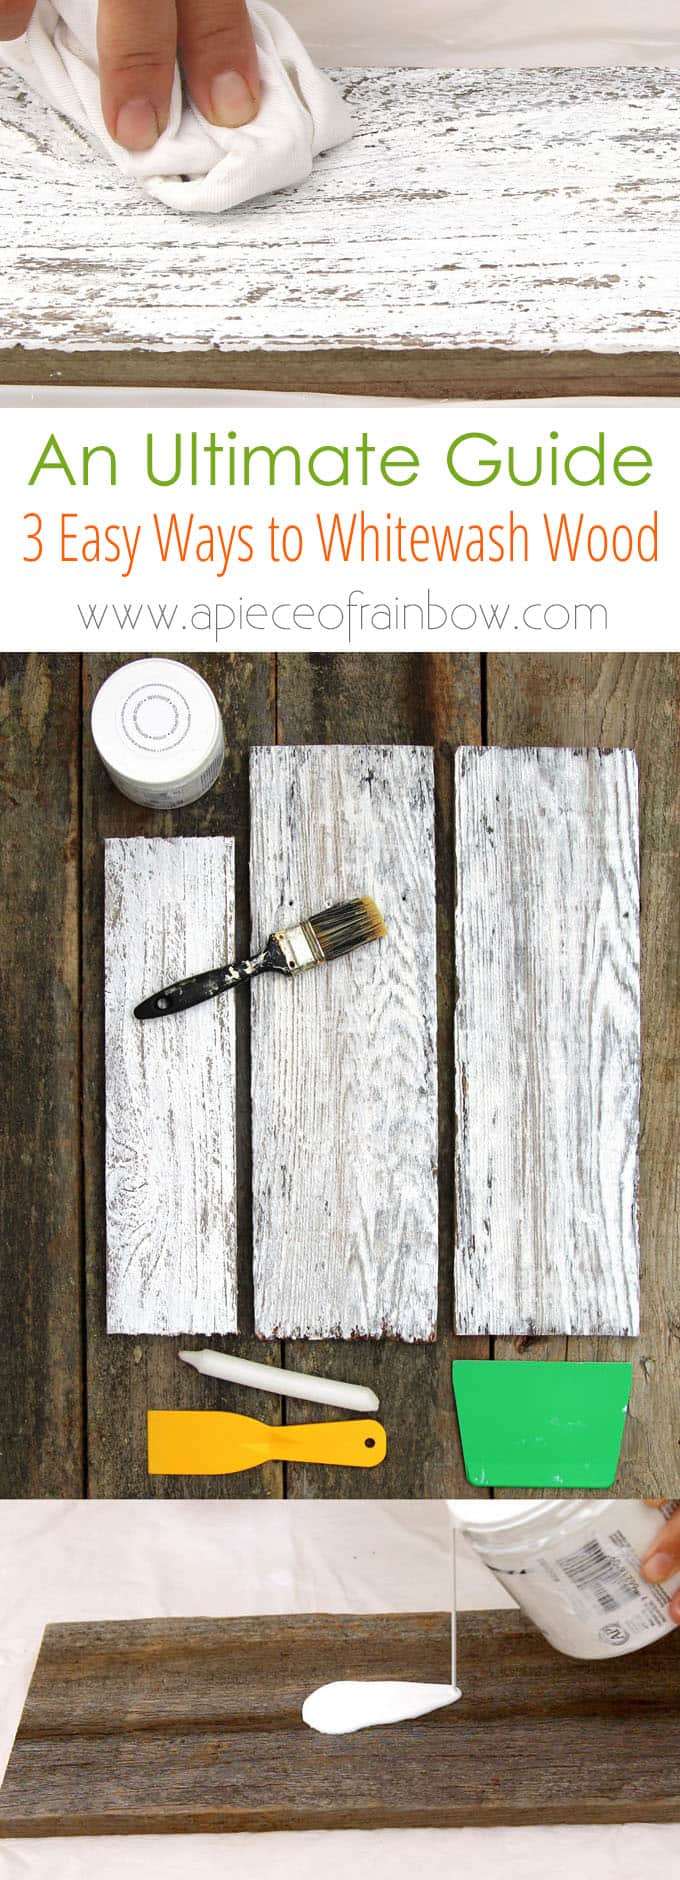 How To Whitewash Wood In 3 Simple Ways An Ultimate Guide A Piece